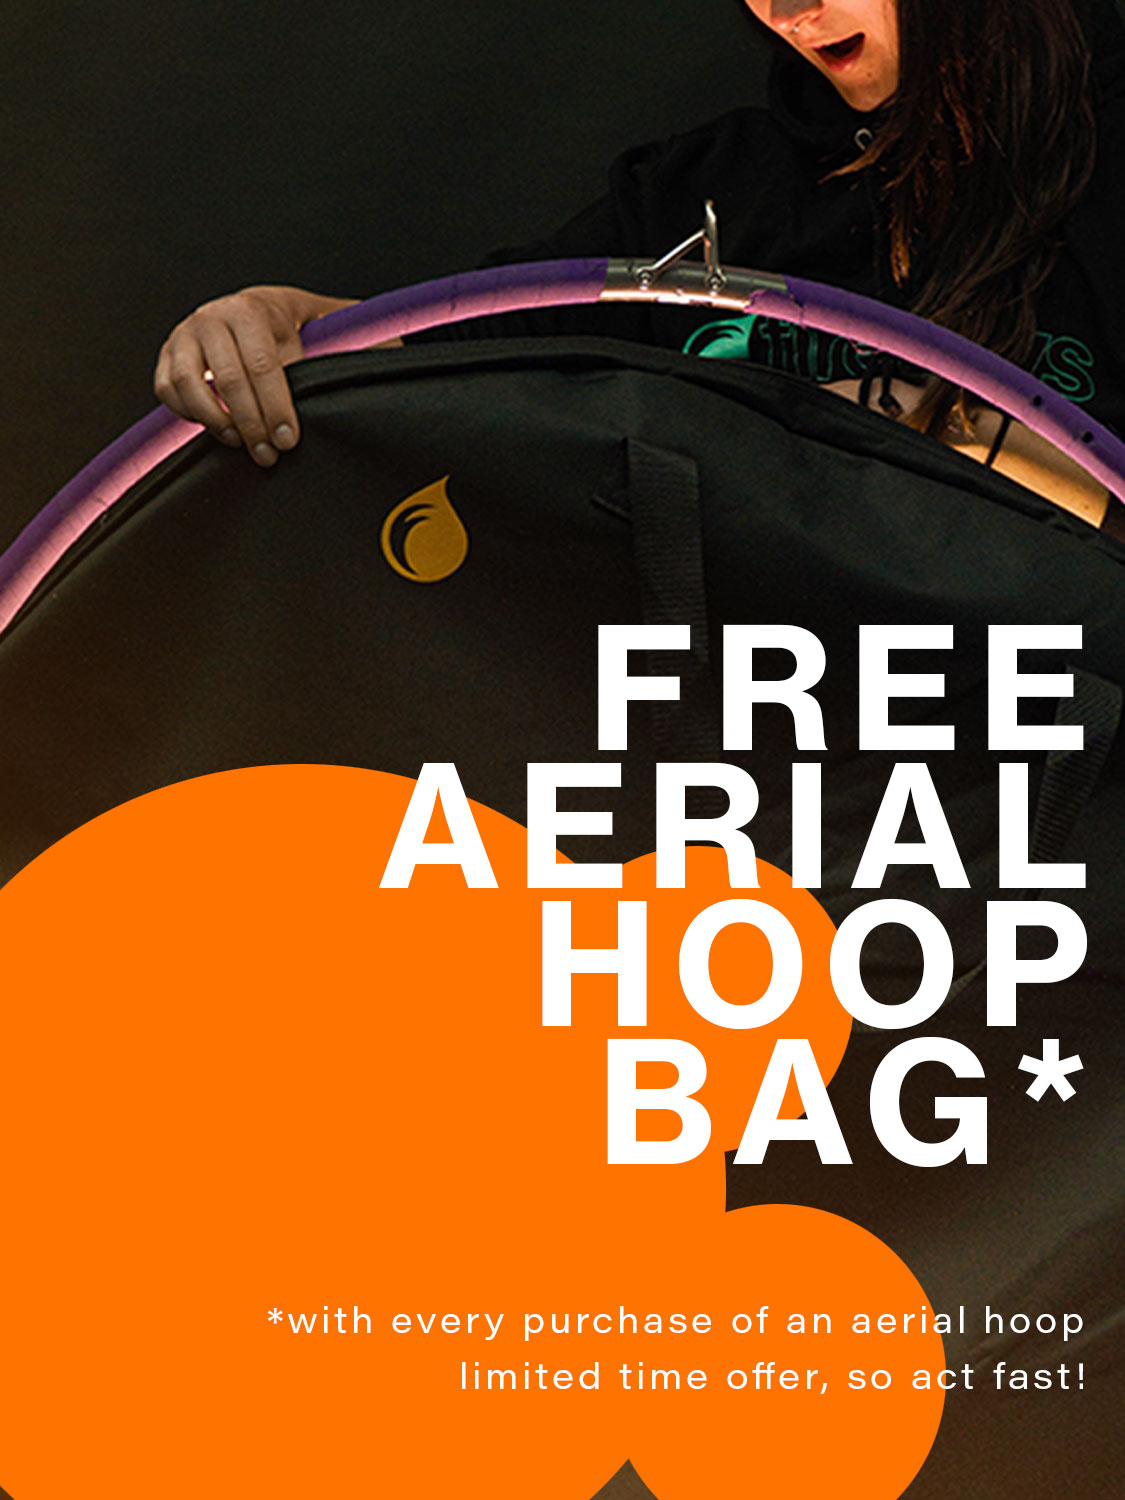 Banner image showing an aerialist opening a glowing hoop bag